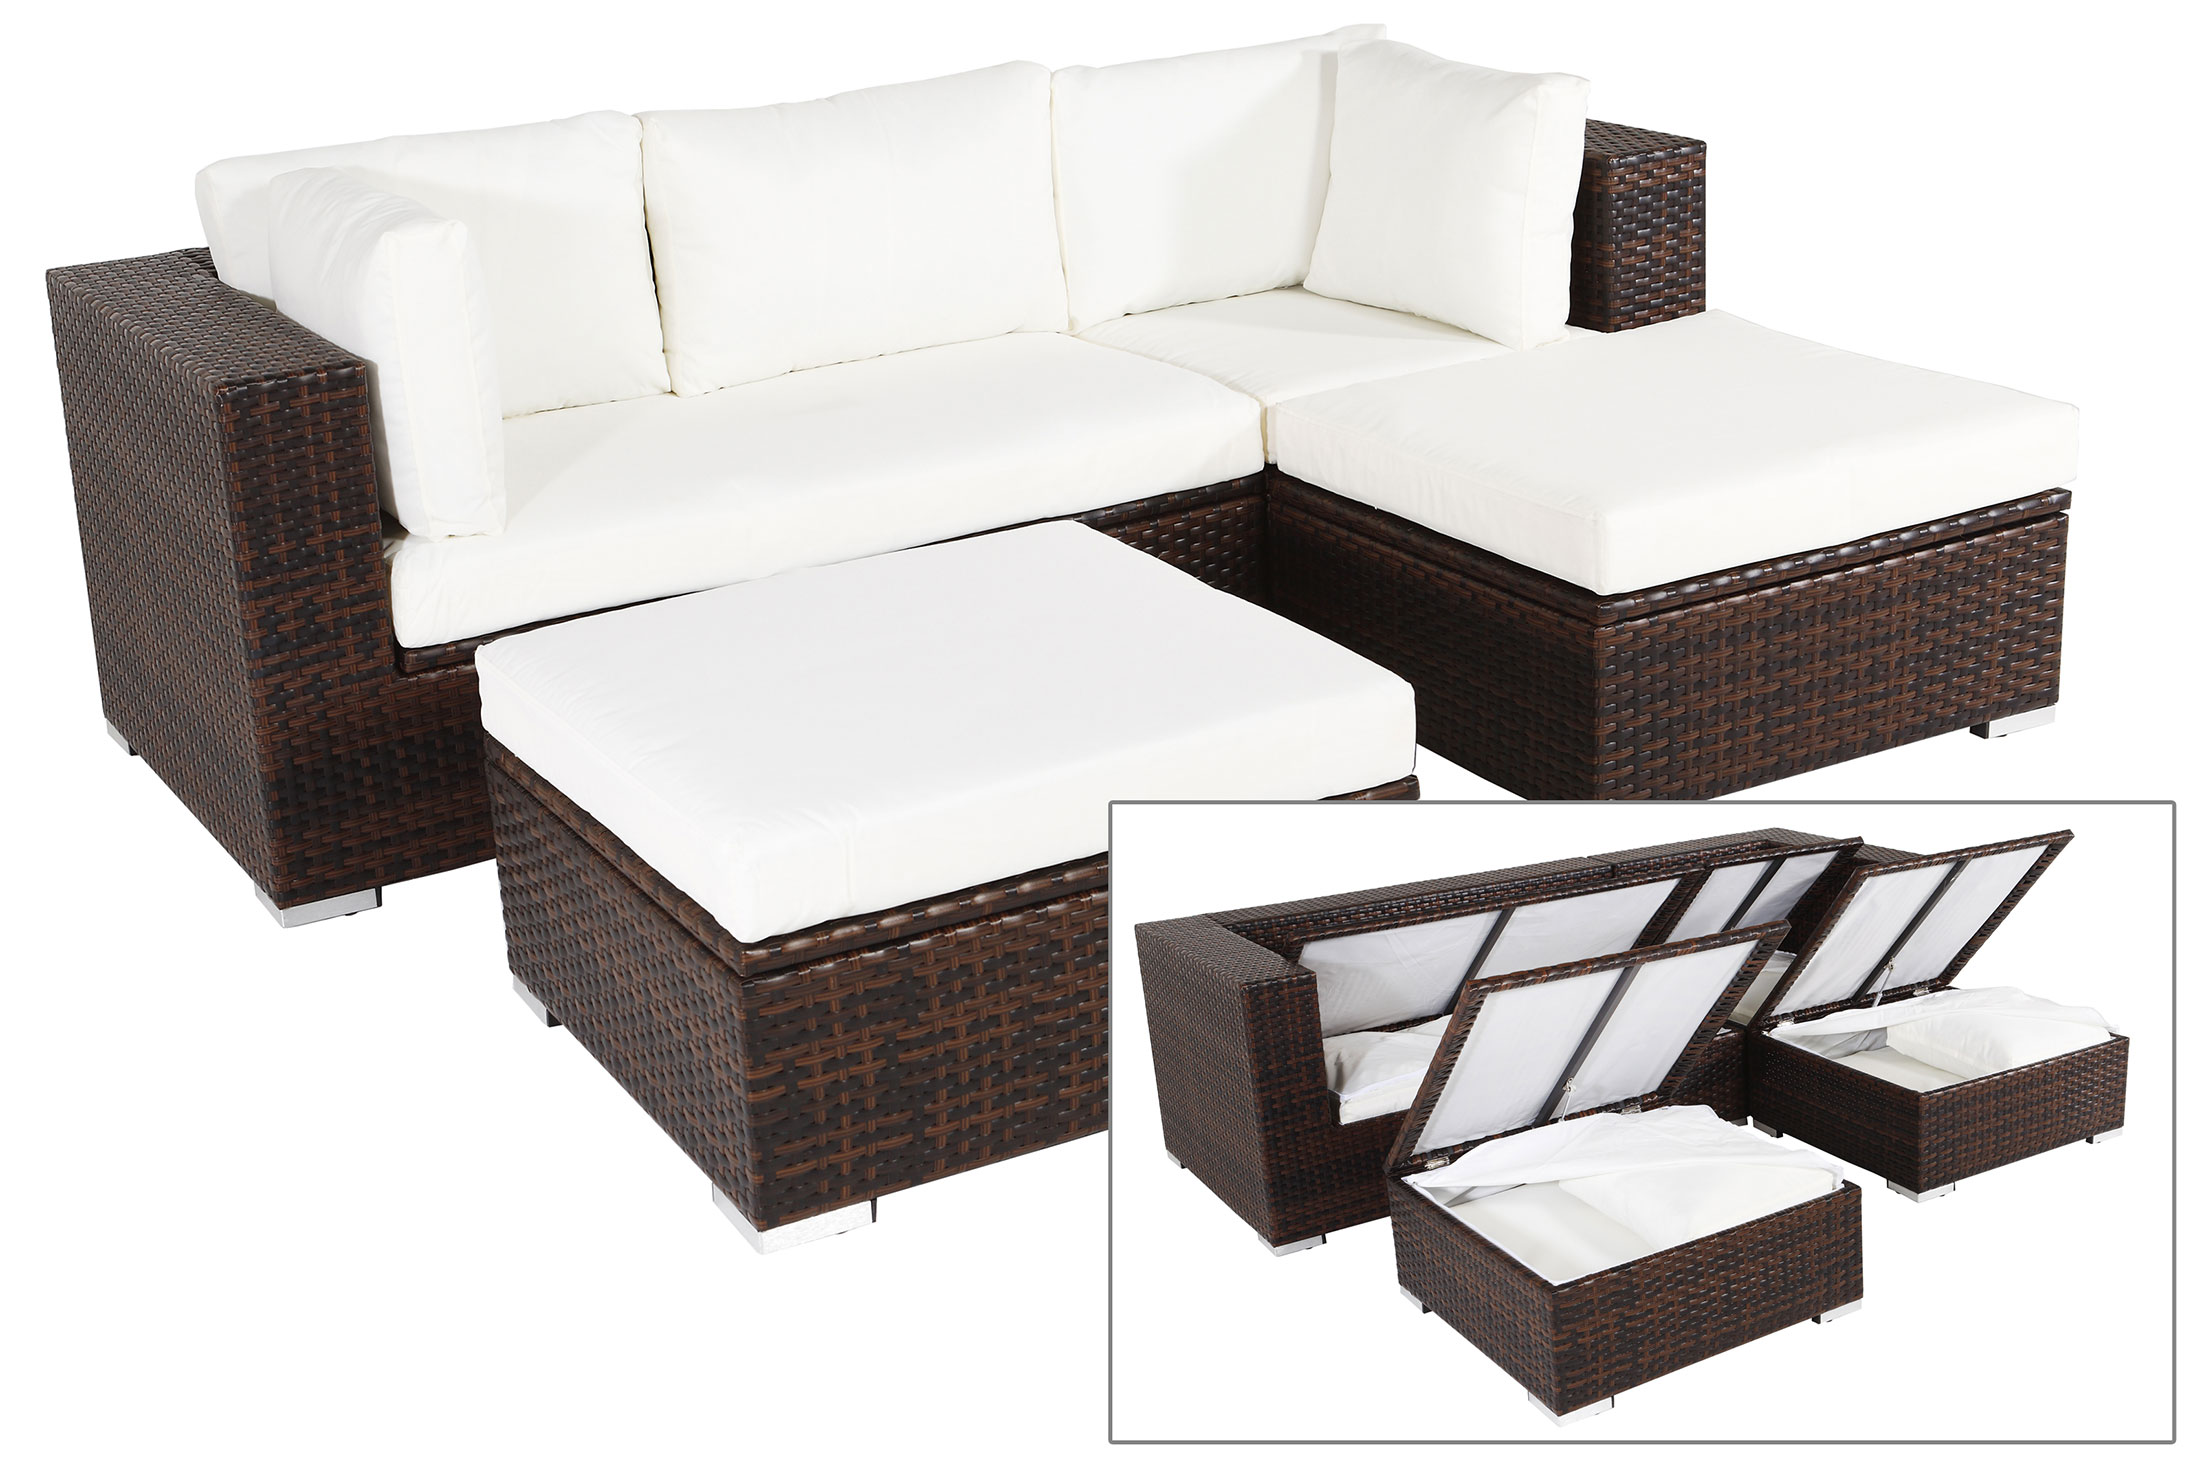 gartenmbel rattan set cheap clp polyrattan gartenmbel. Black Bedroom Furniture Sets. Home Design Ideas